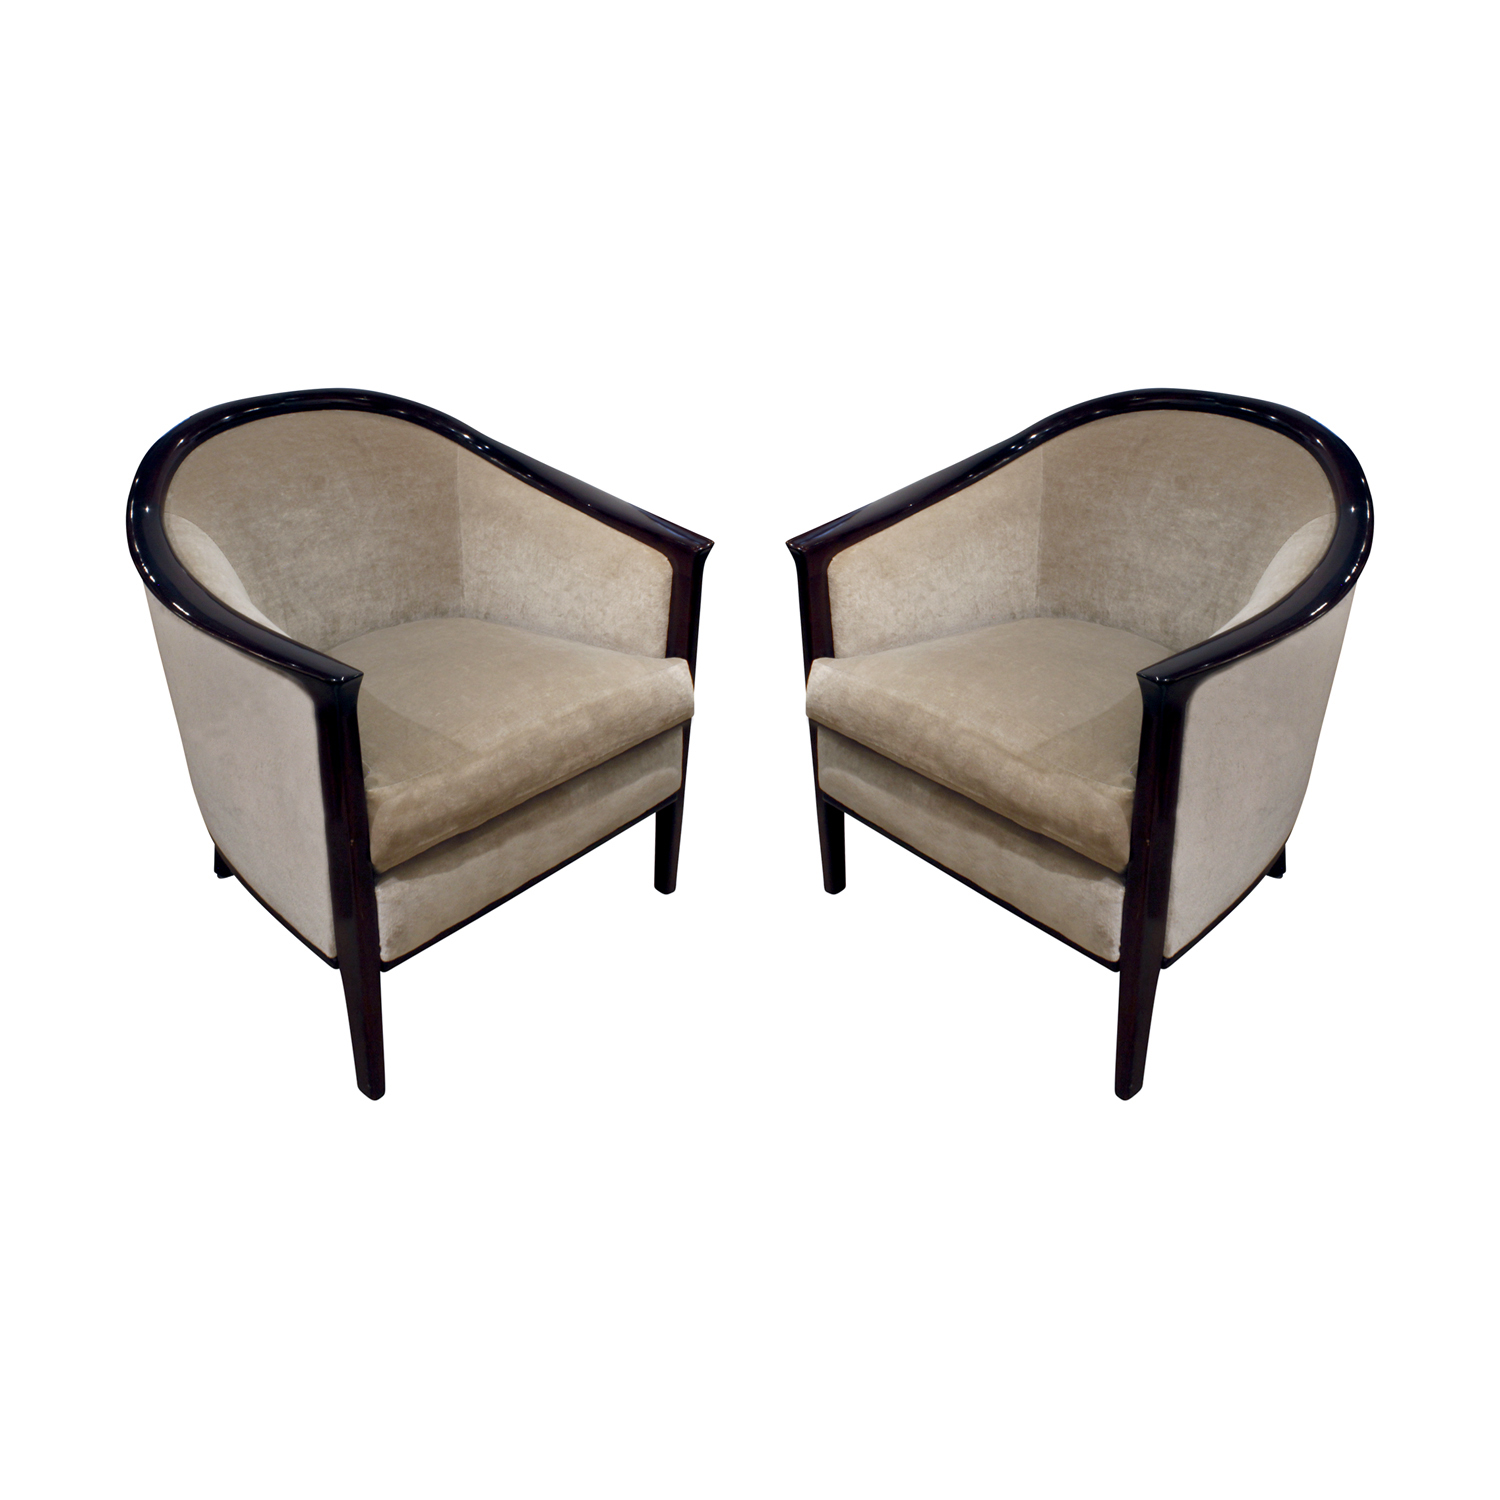 French 150 30s chairs mahg trim loungechairs188 main.jpg